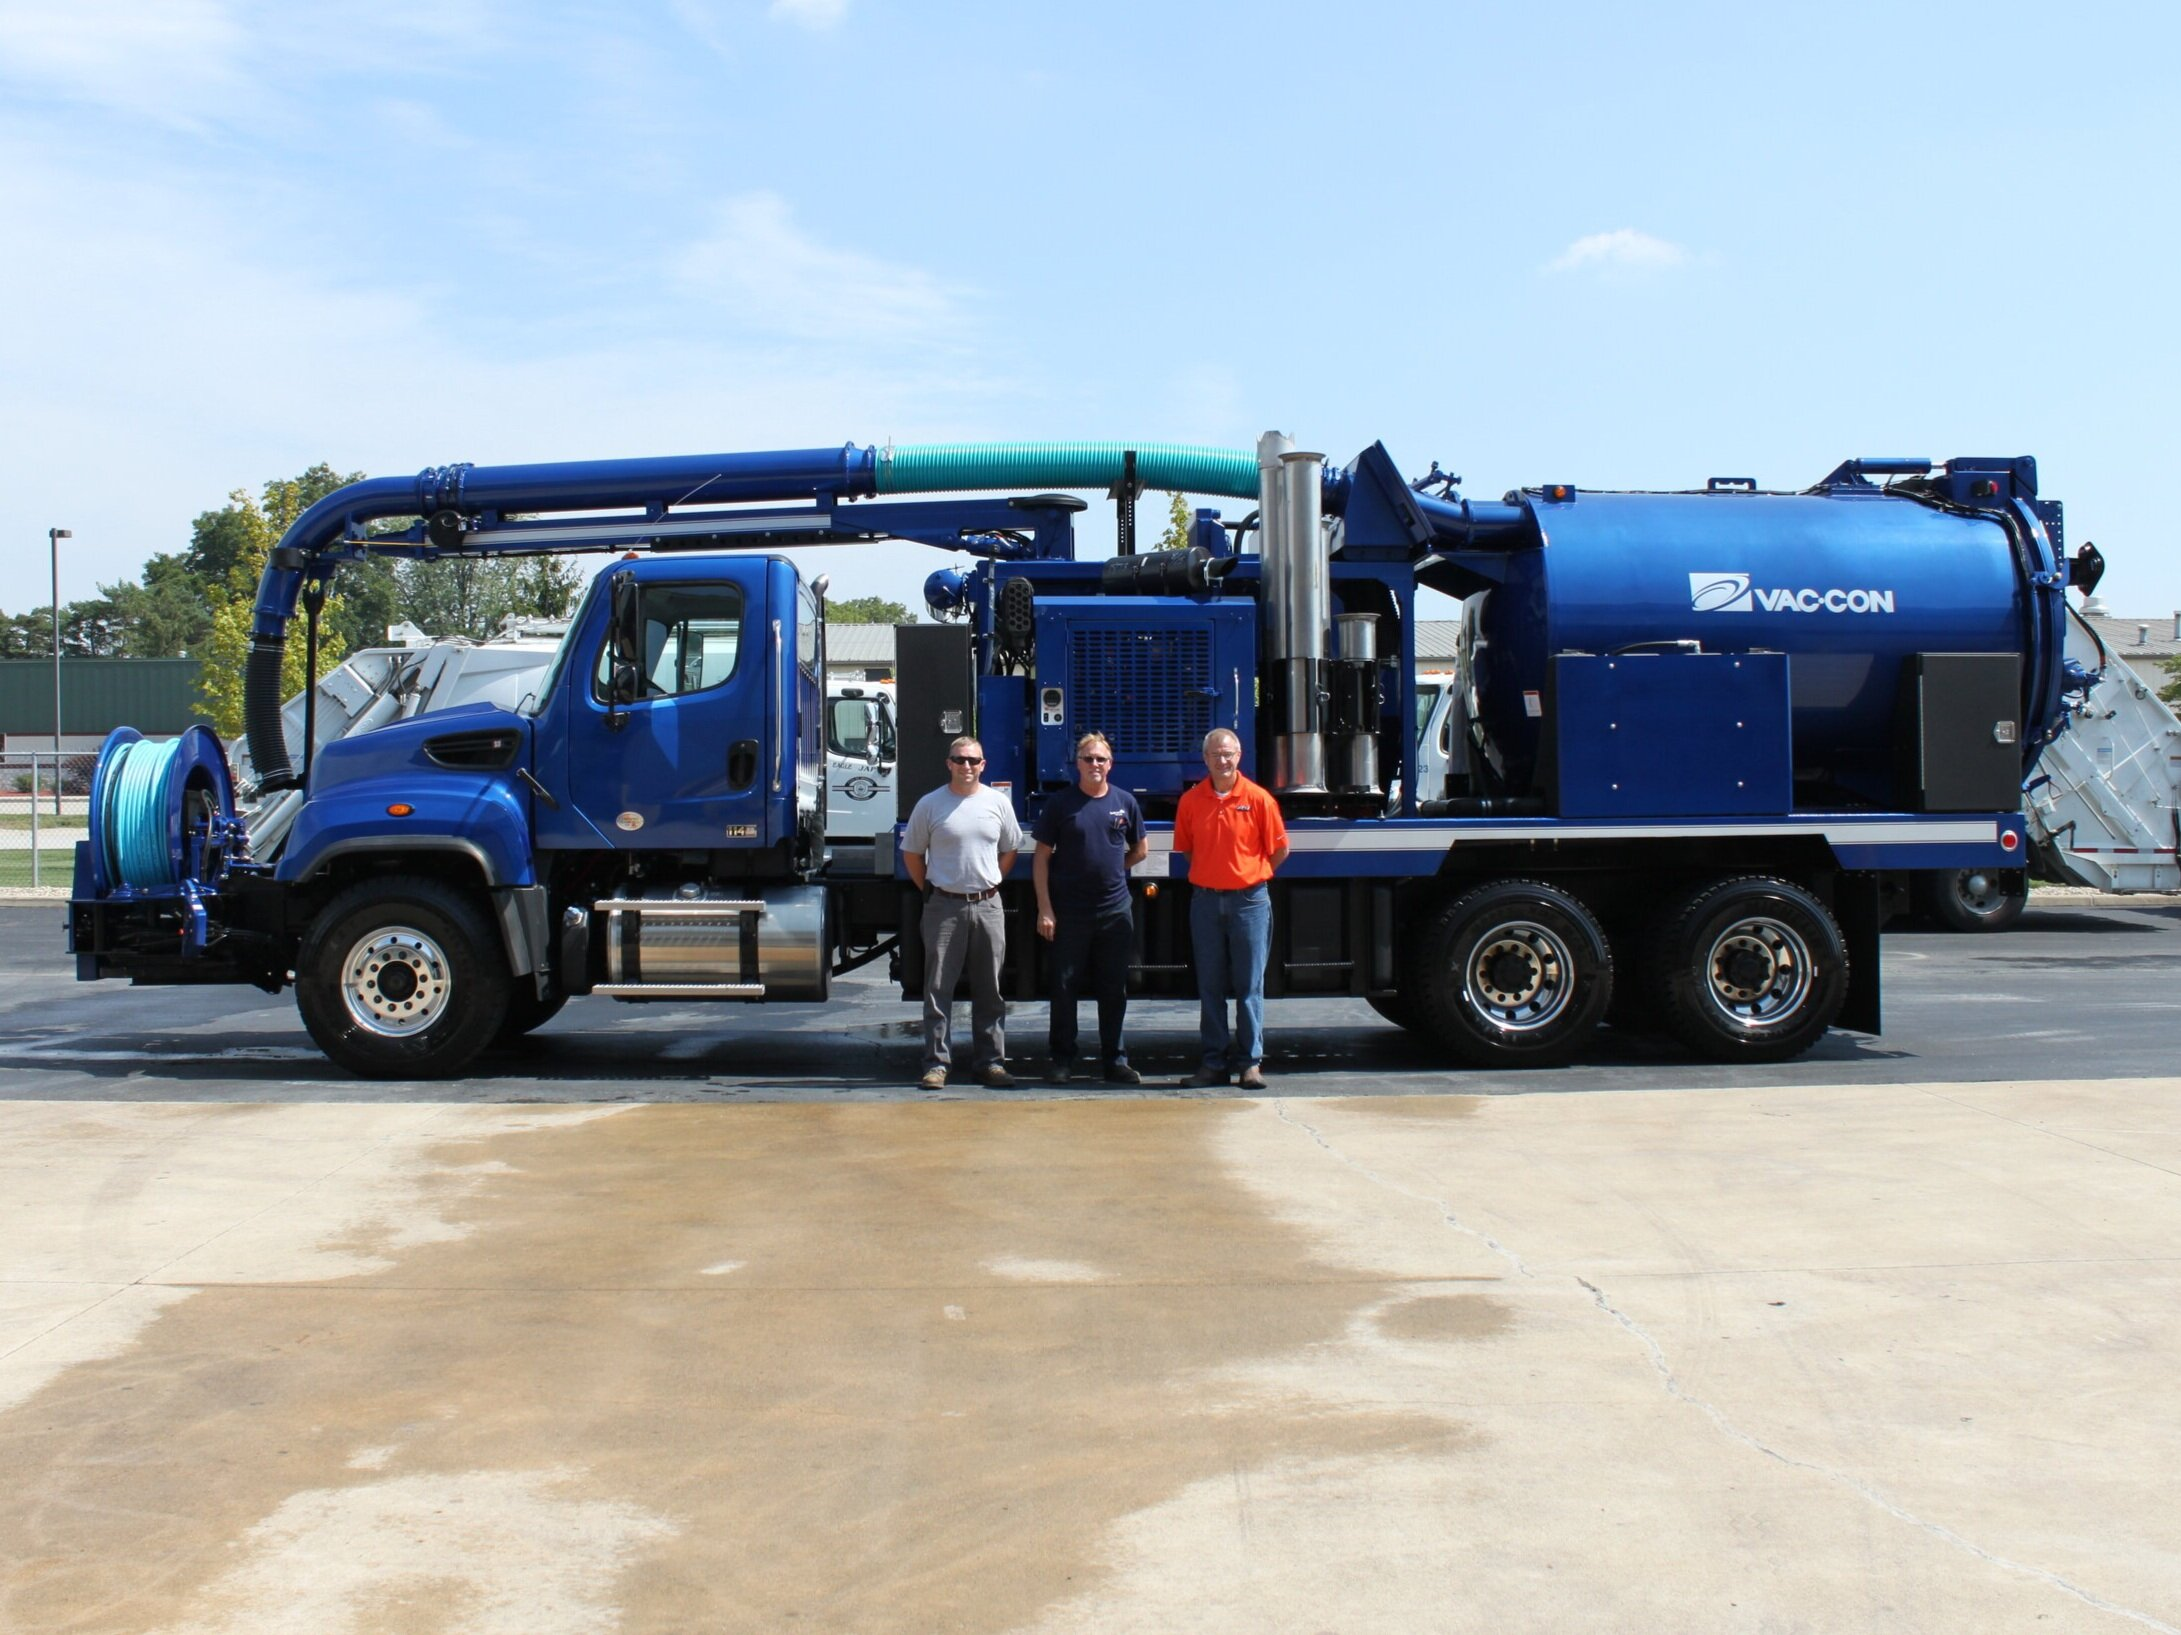 vac-con - cOMBINATION SEWER CLEANER AND JETTER MACHINES